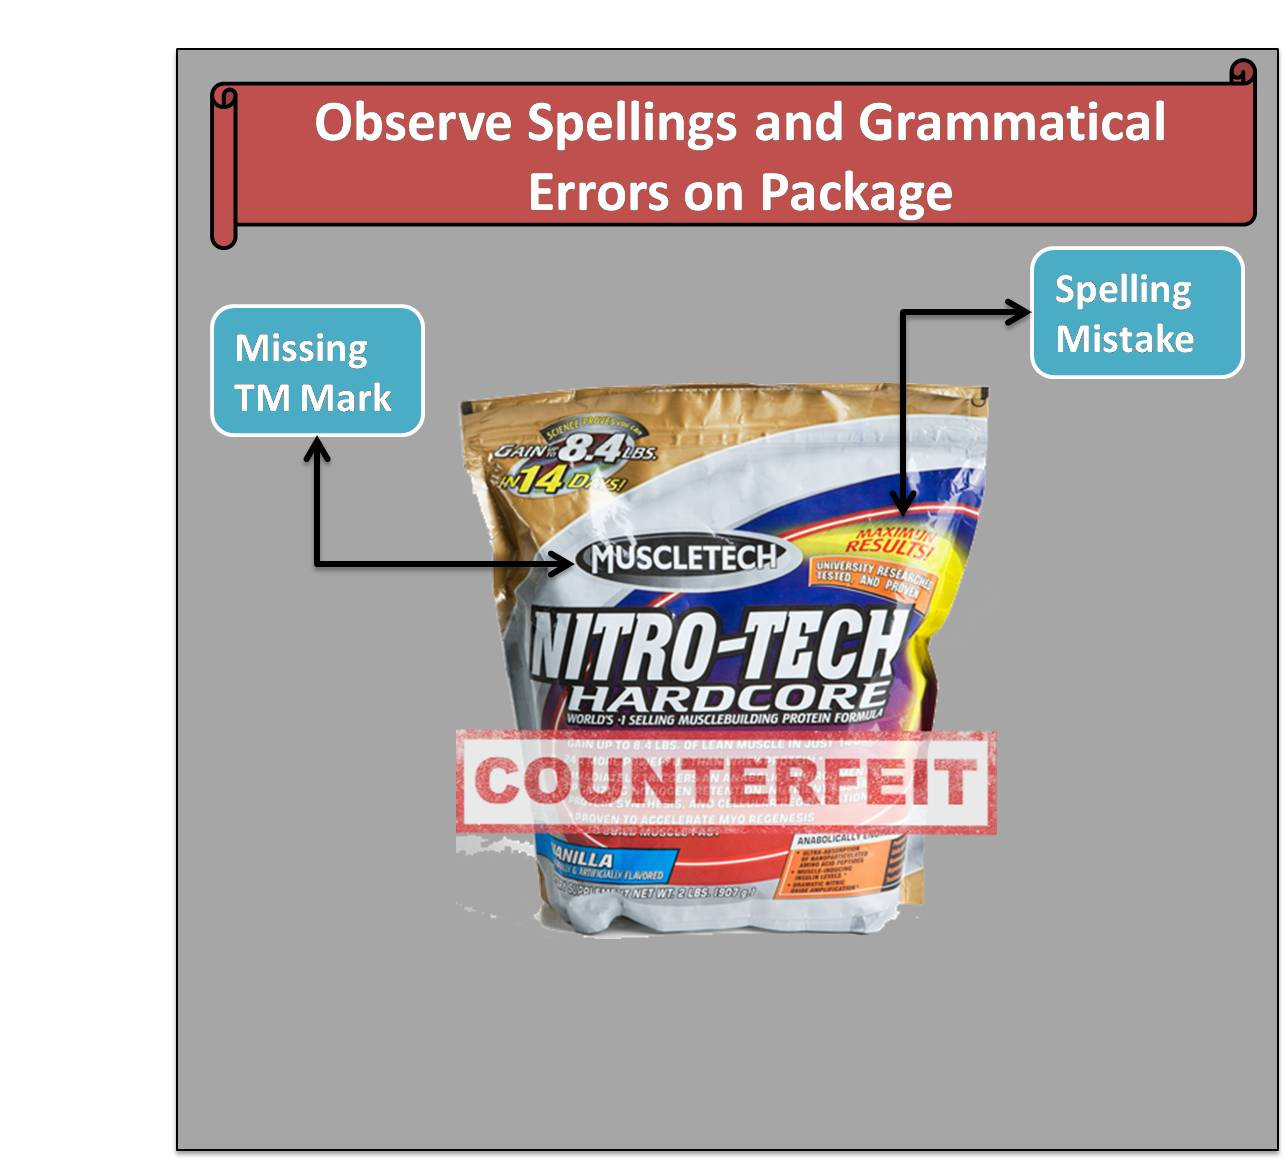 Observe spellings and grammatical errors on package